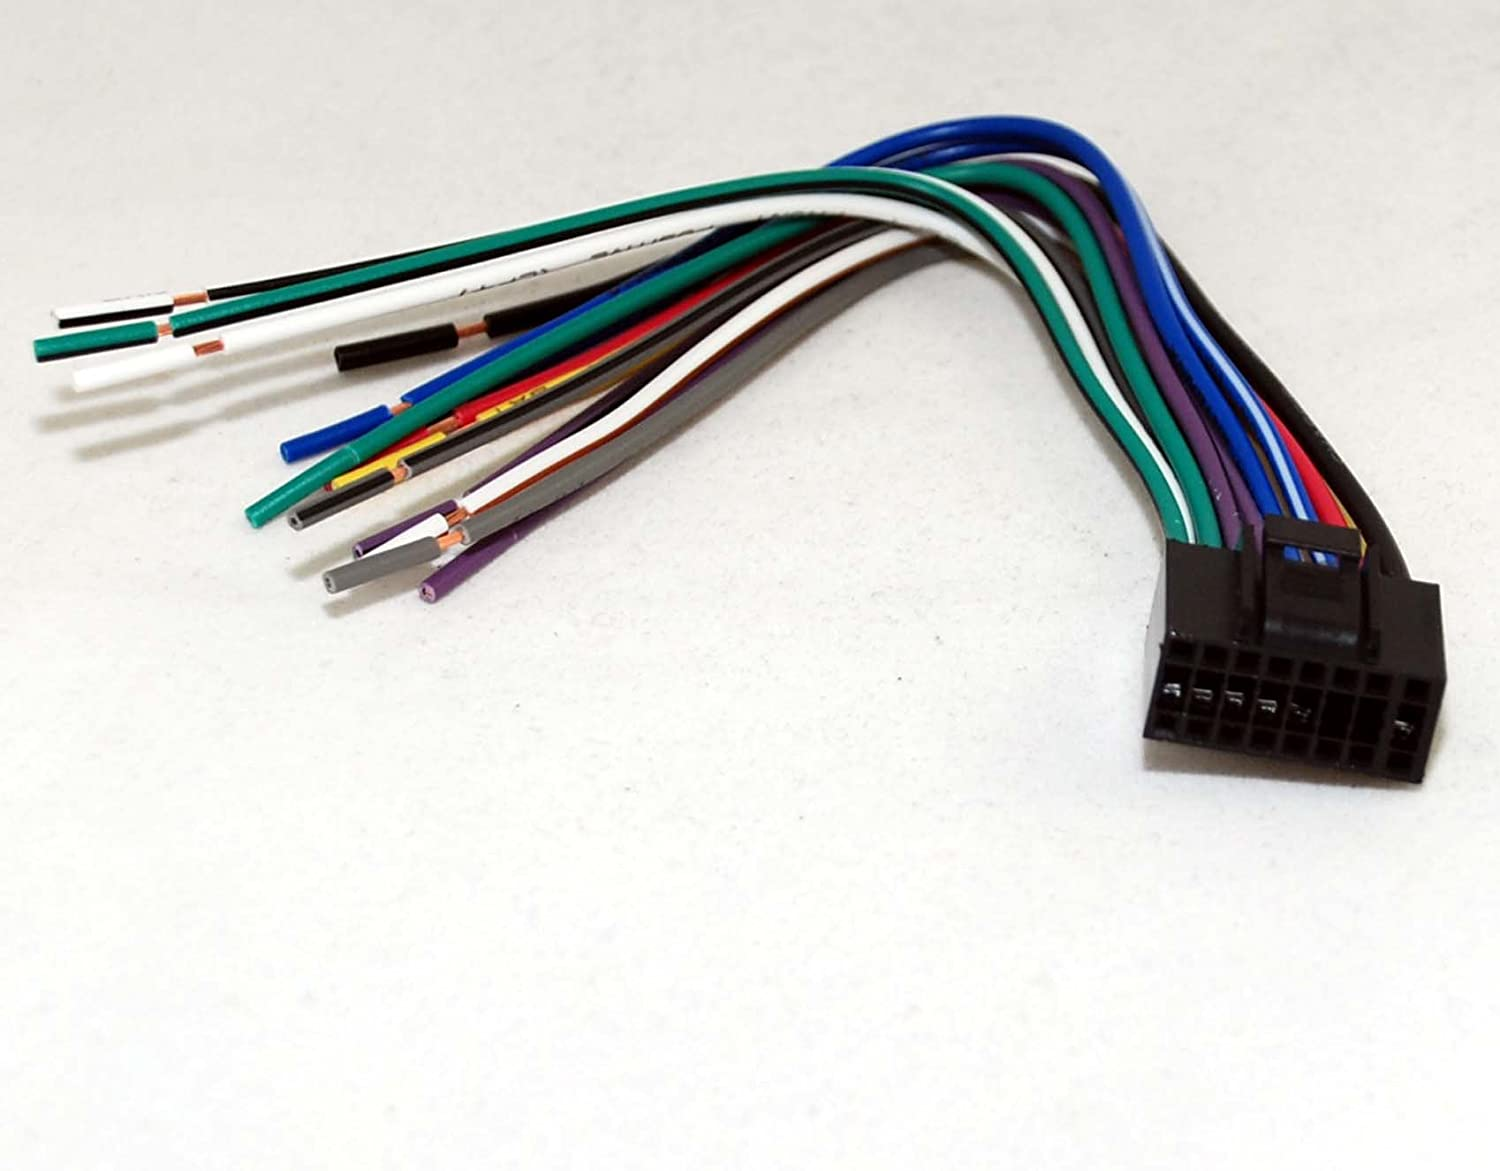 61Rzeblbo0L._SL1500_ amazon com xtenzi harness for dual 16 pin wire harness xdvd8181  at readyjetset.co